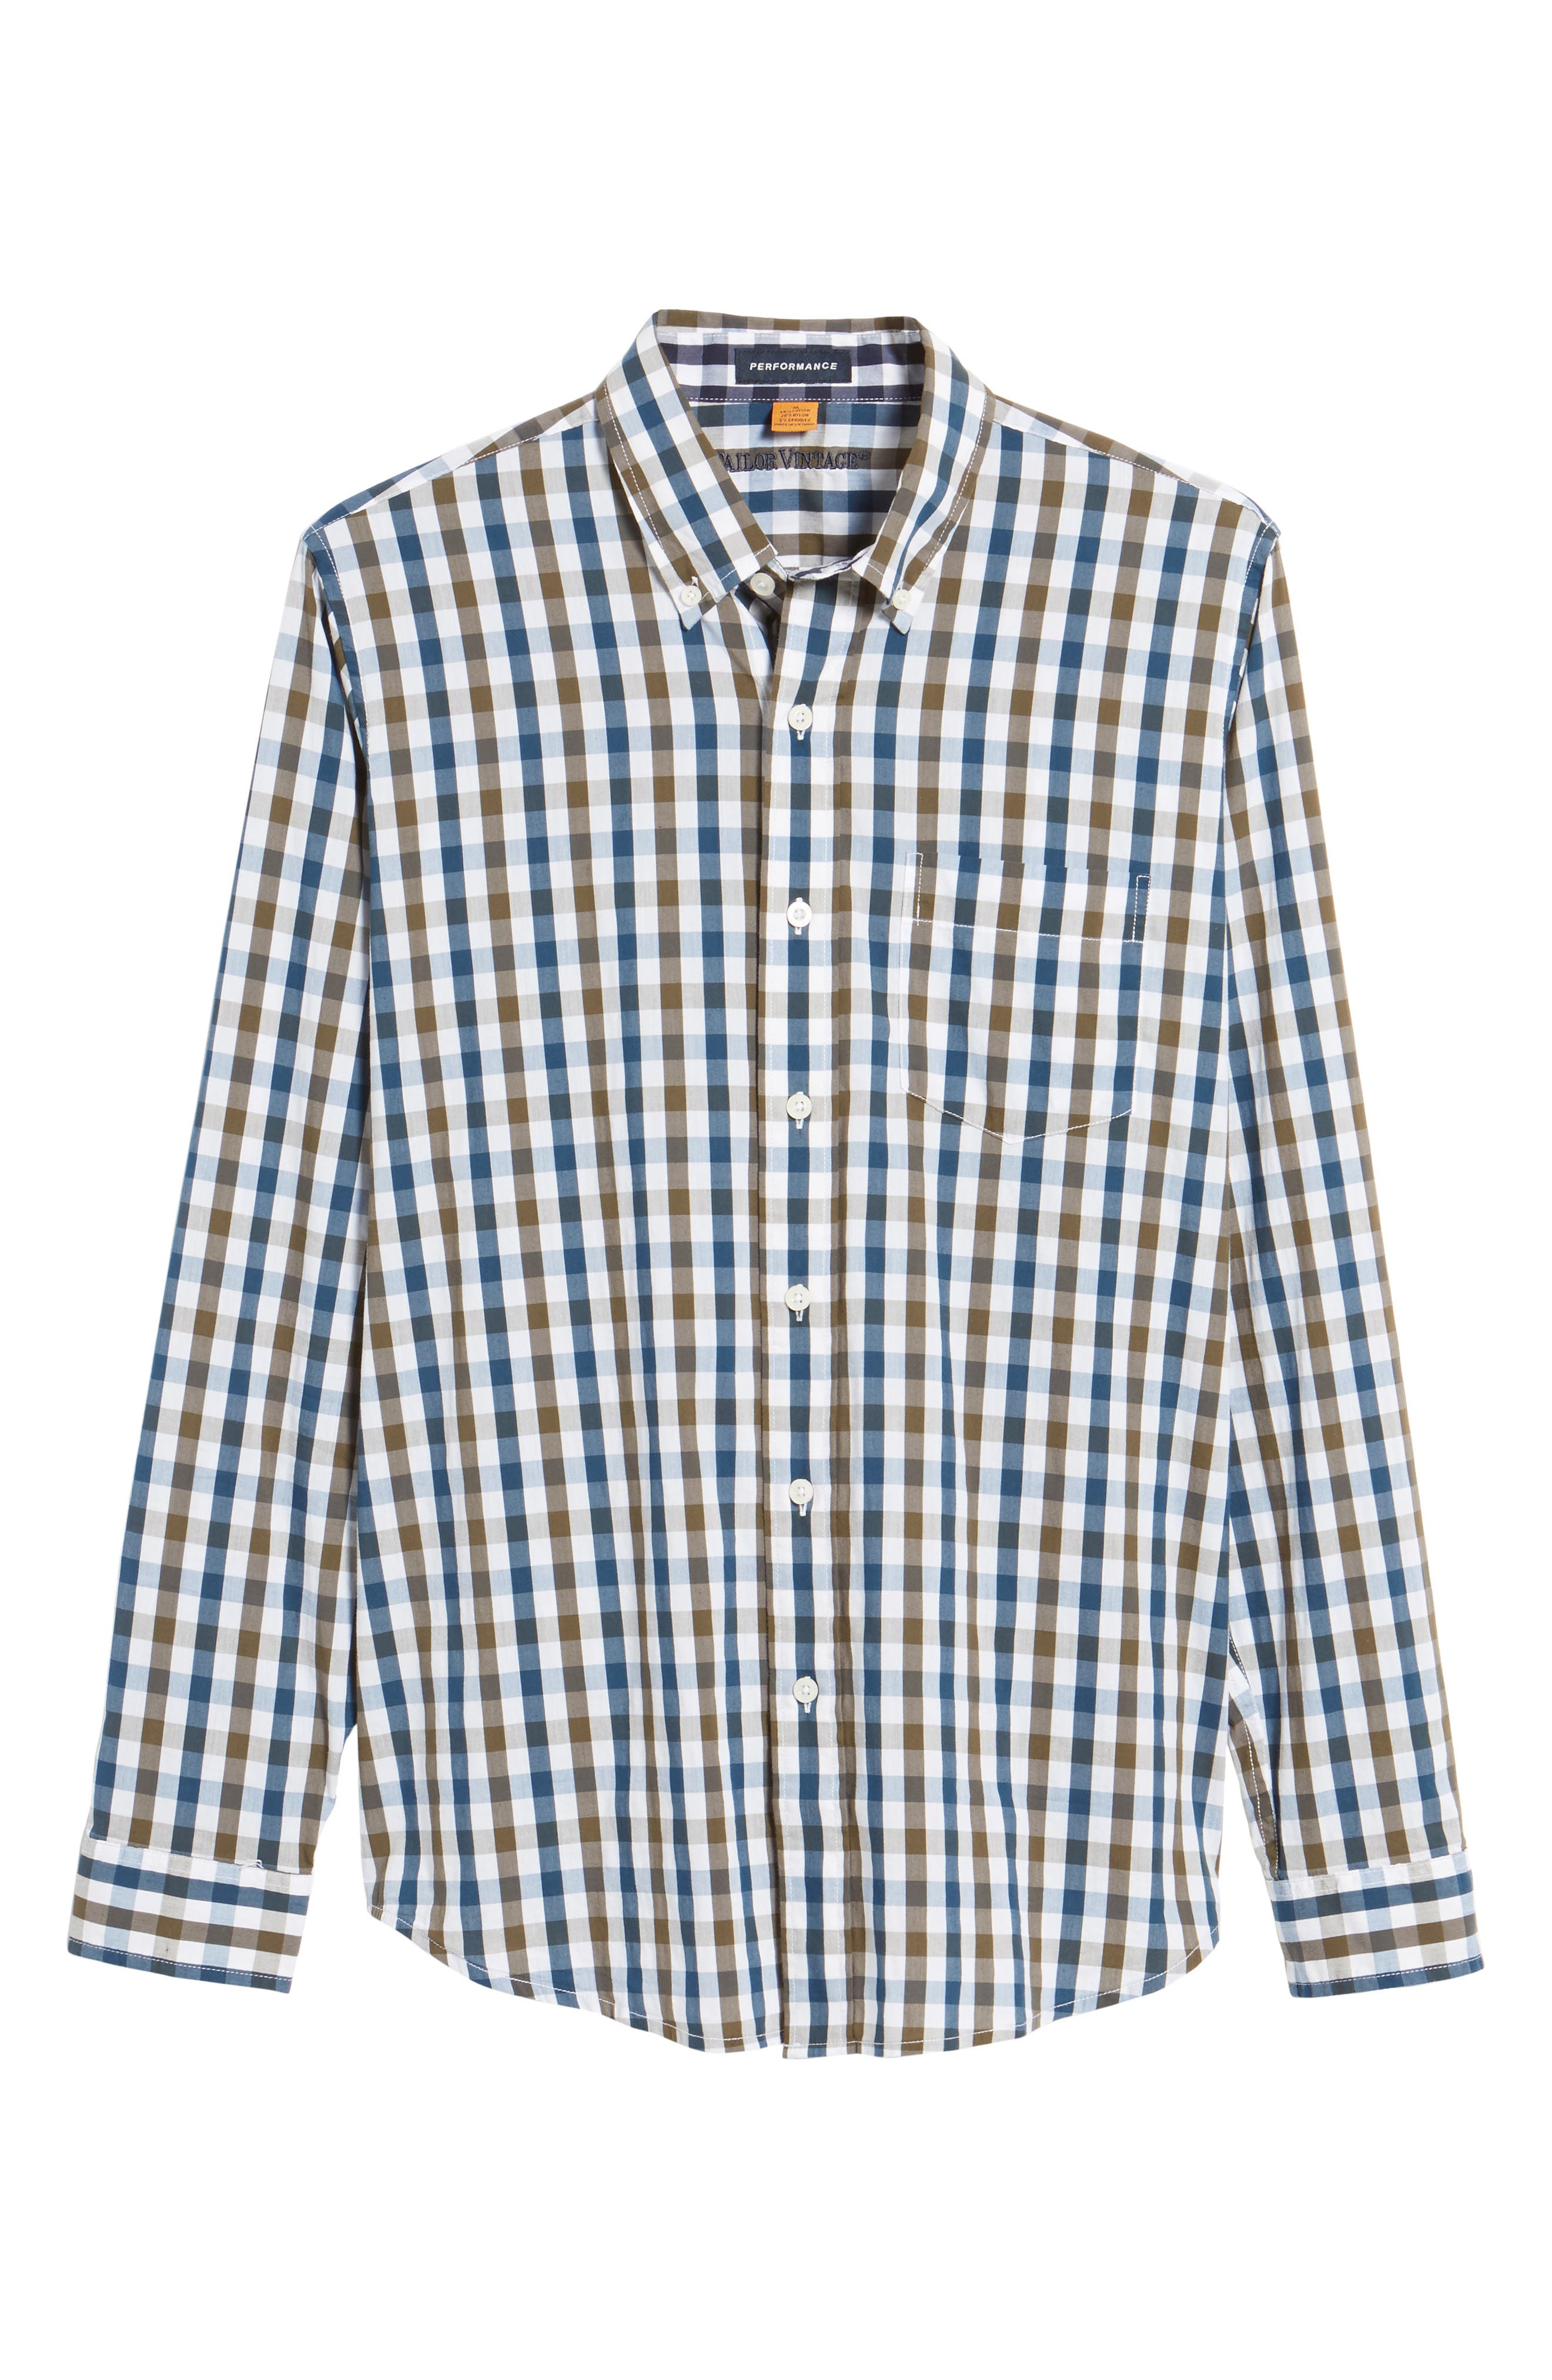 Regular Fit Performance Sport Shirt,                             Alternate thumbnail 6, color,                             Teal/ Army Tricolor Gingham